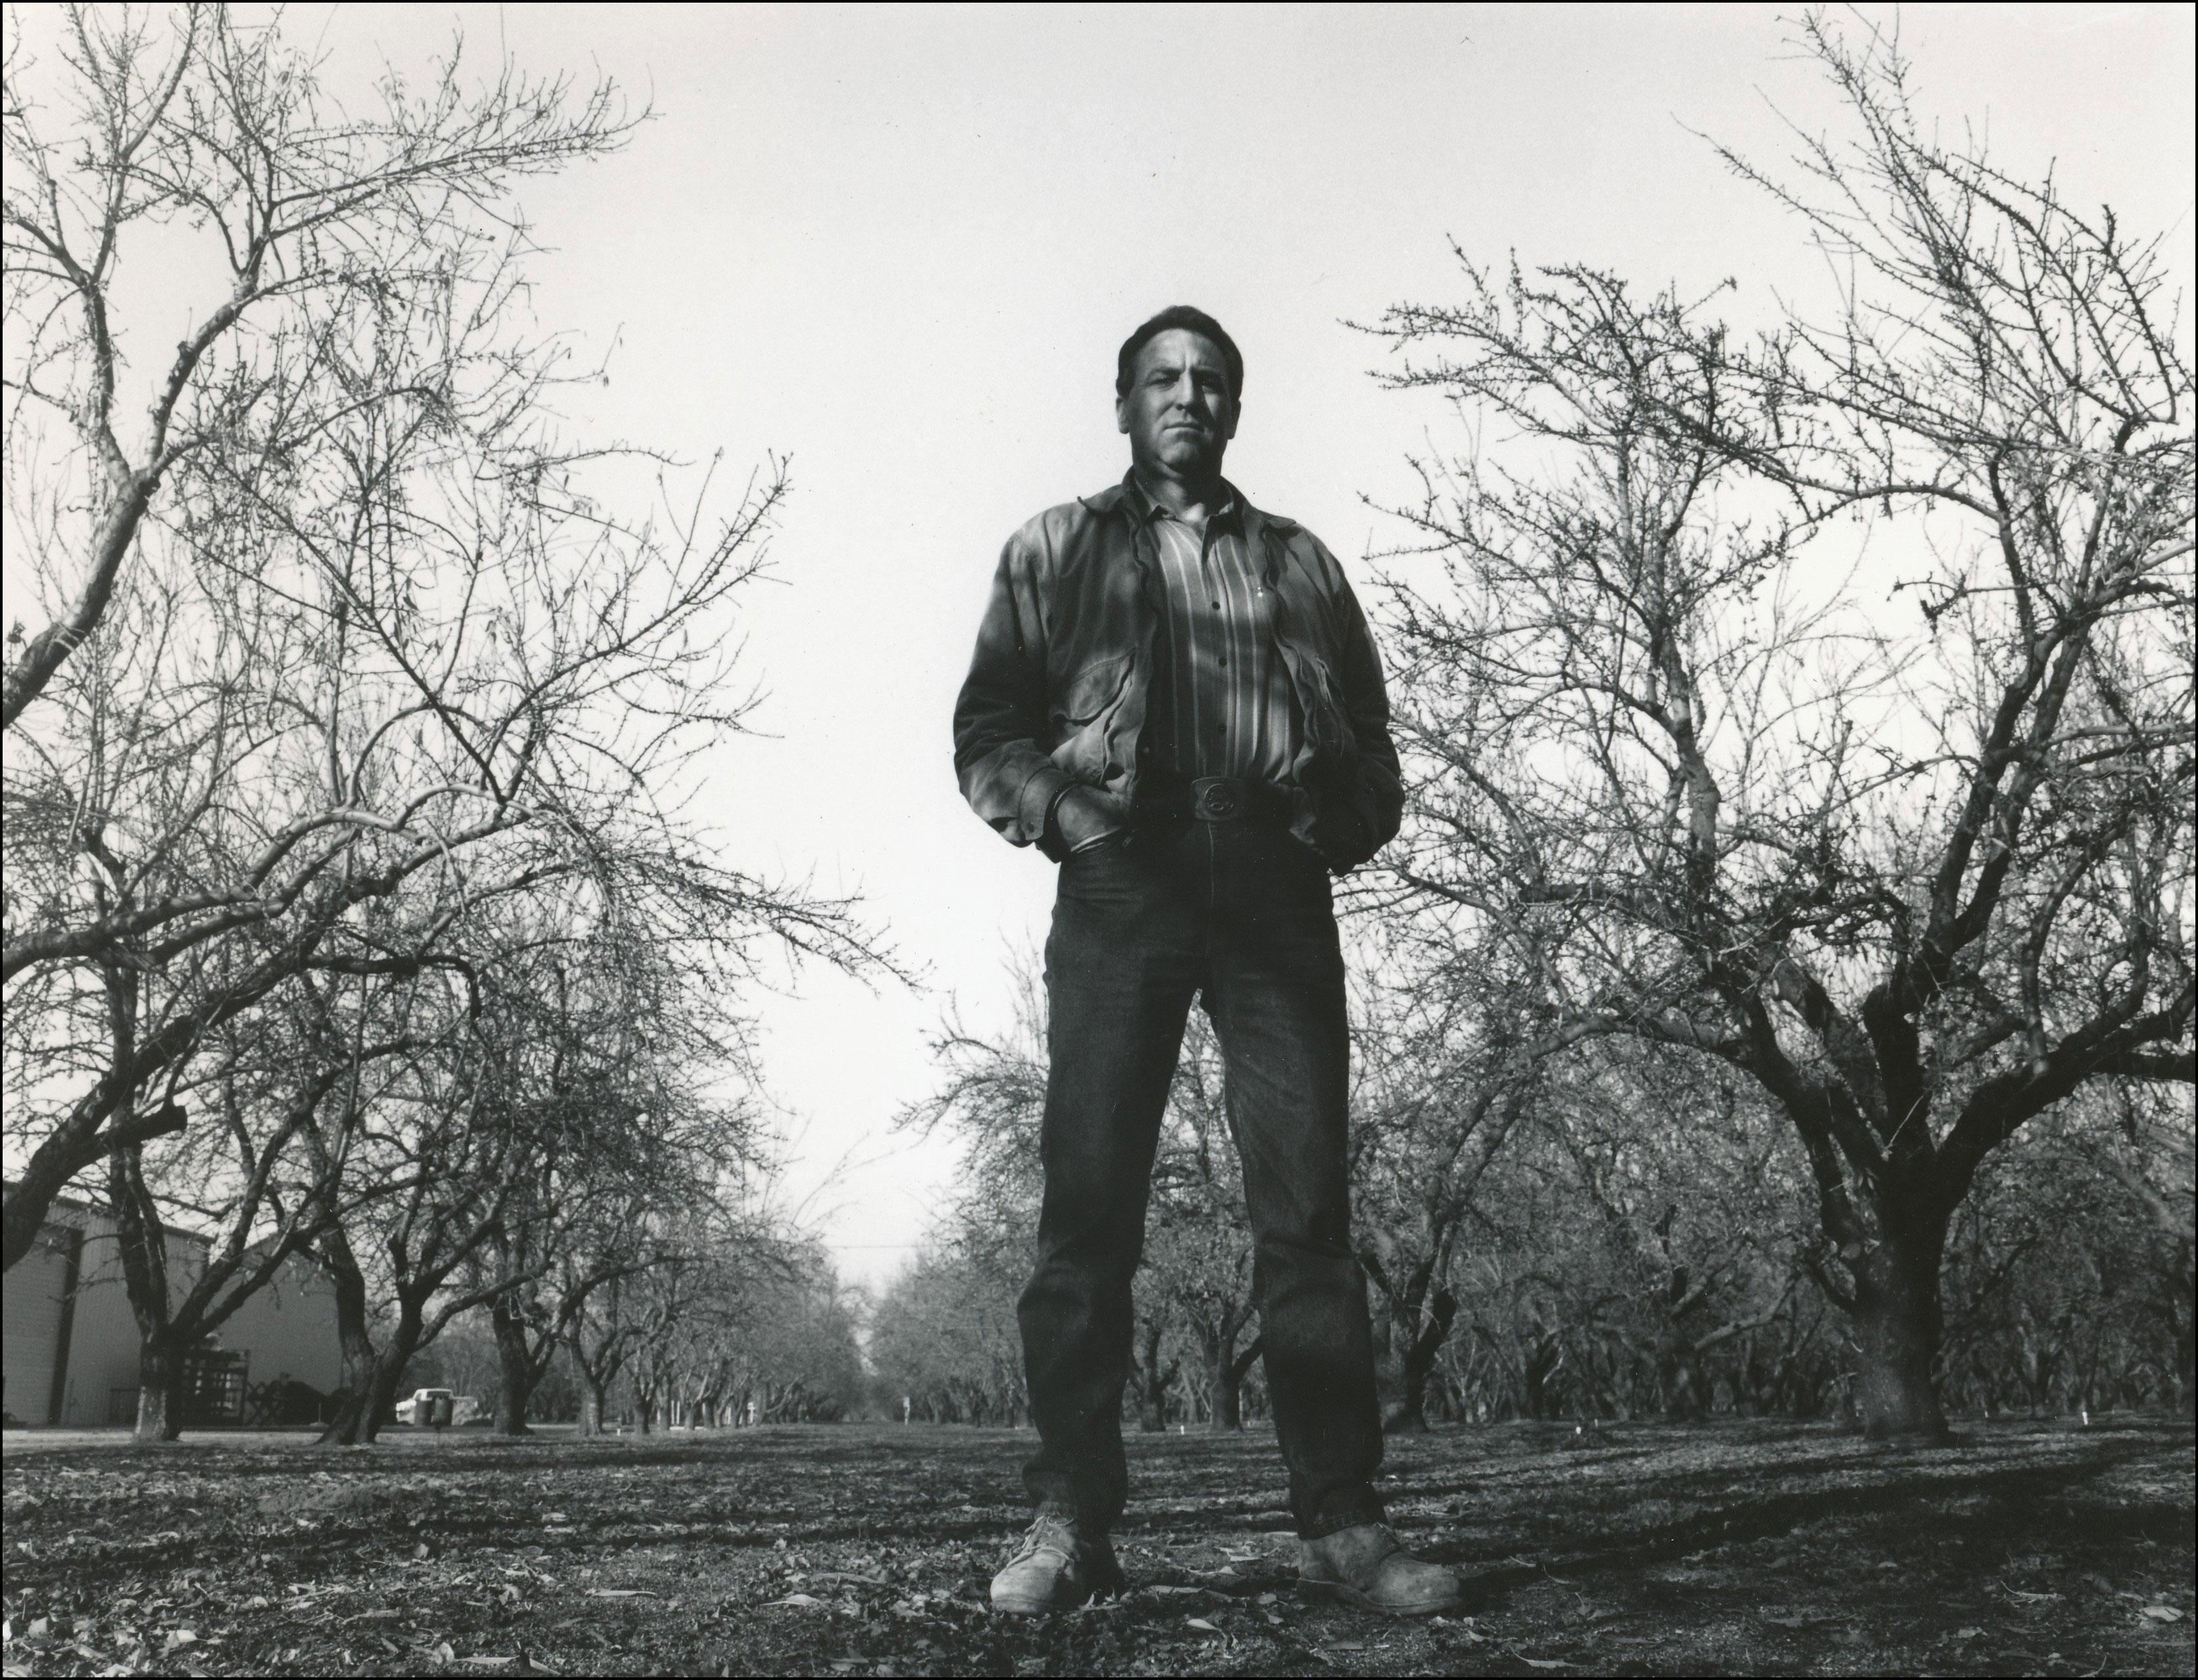 Man standing outside in trees with hands in pocket